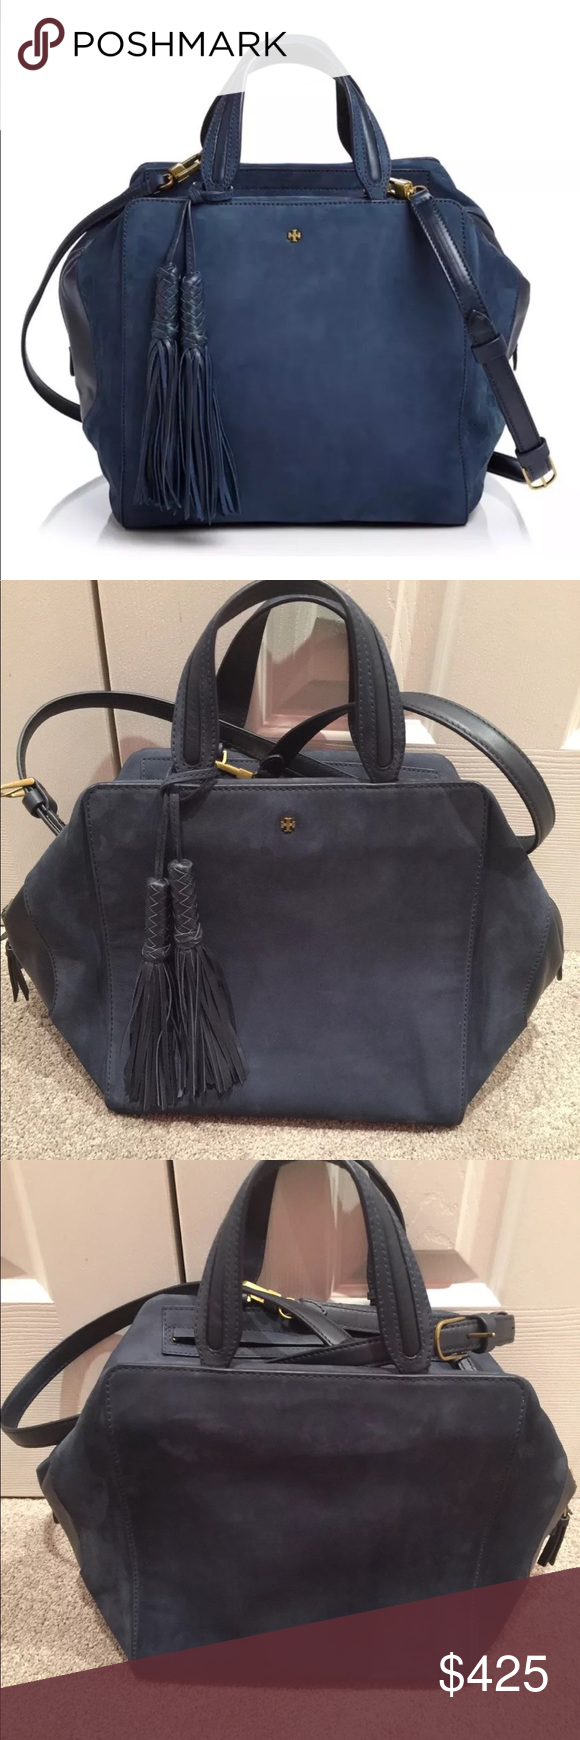 c02184f8b5d Tory Burch Tassel Cube Satchel The first picture is a stock photo of the  handbag